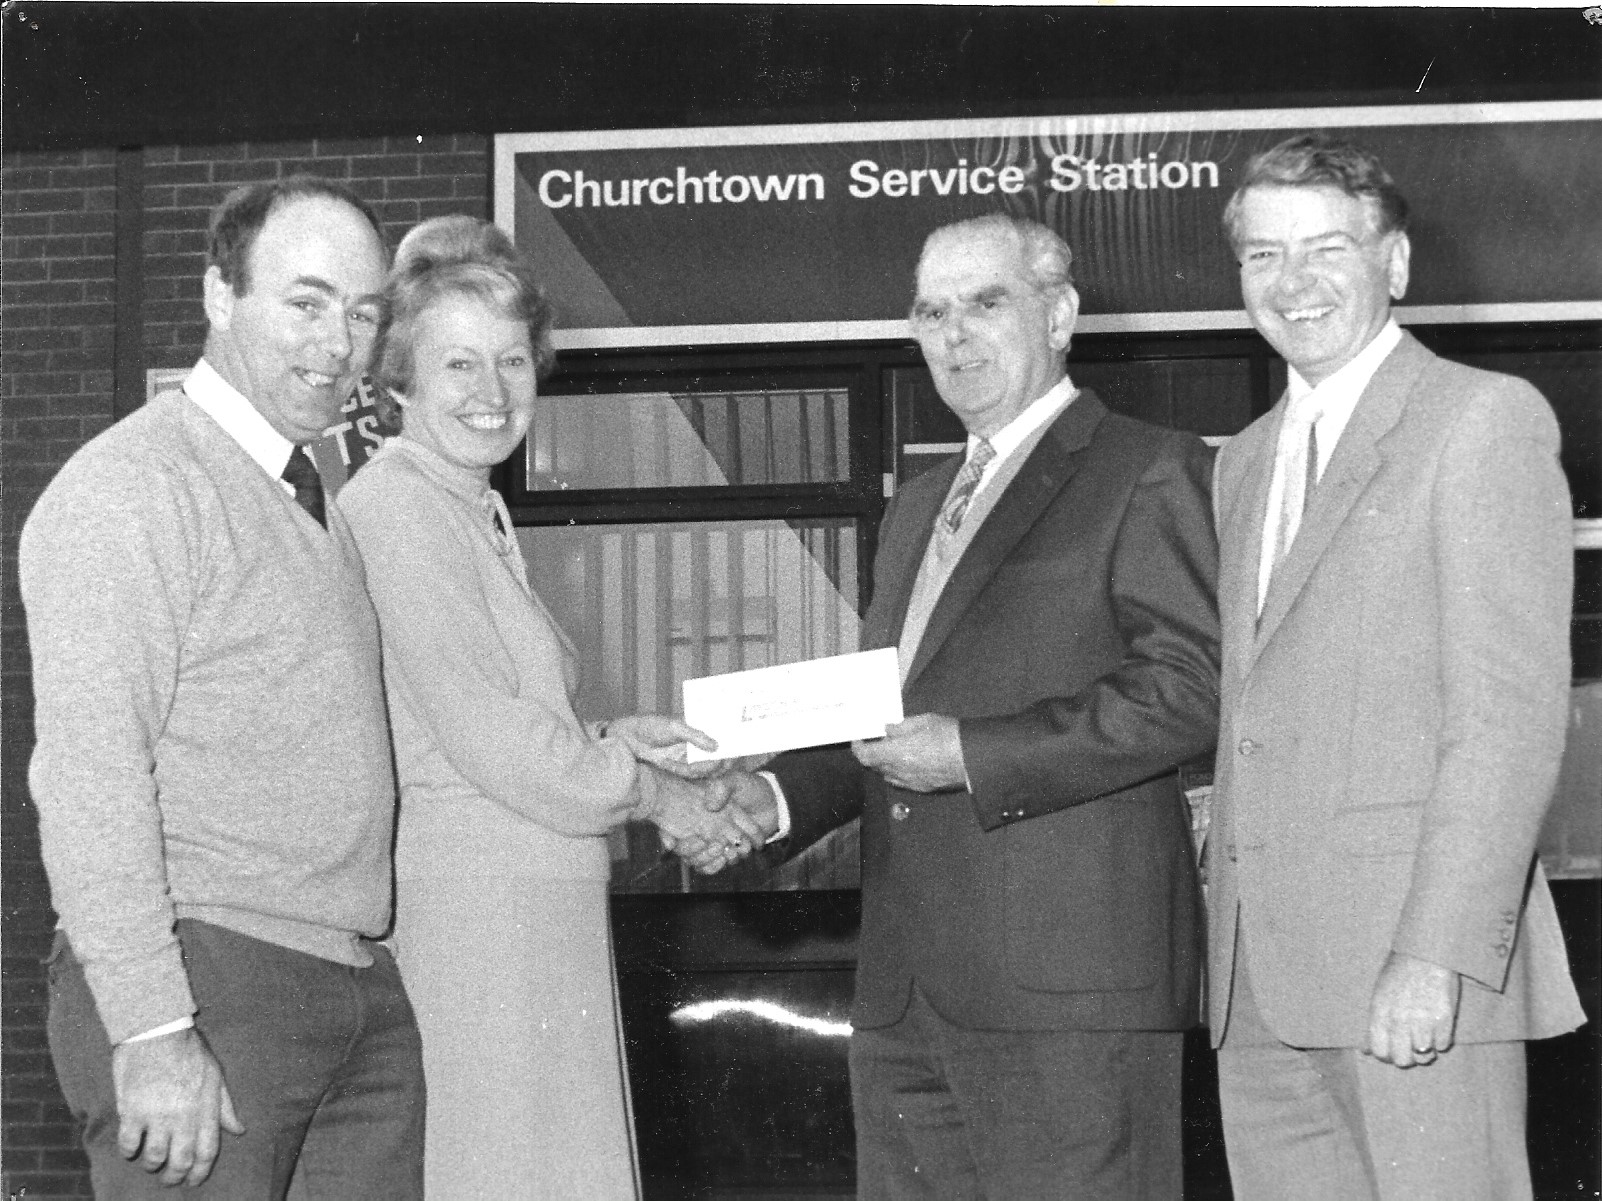 Staff at Churchtown Service Station in Southport present a holiday prize to competition winners on 15 November 1983